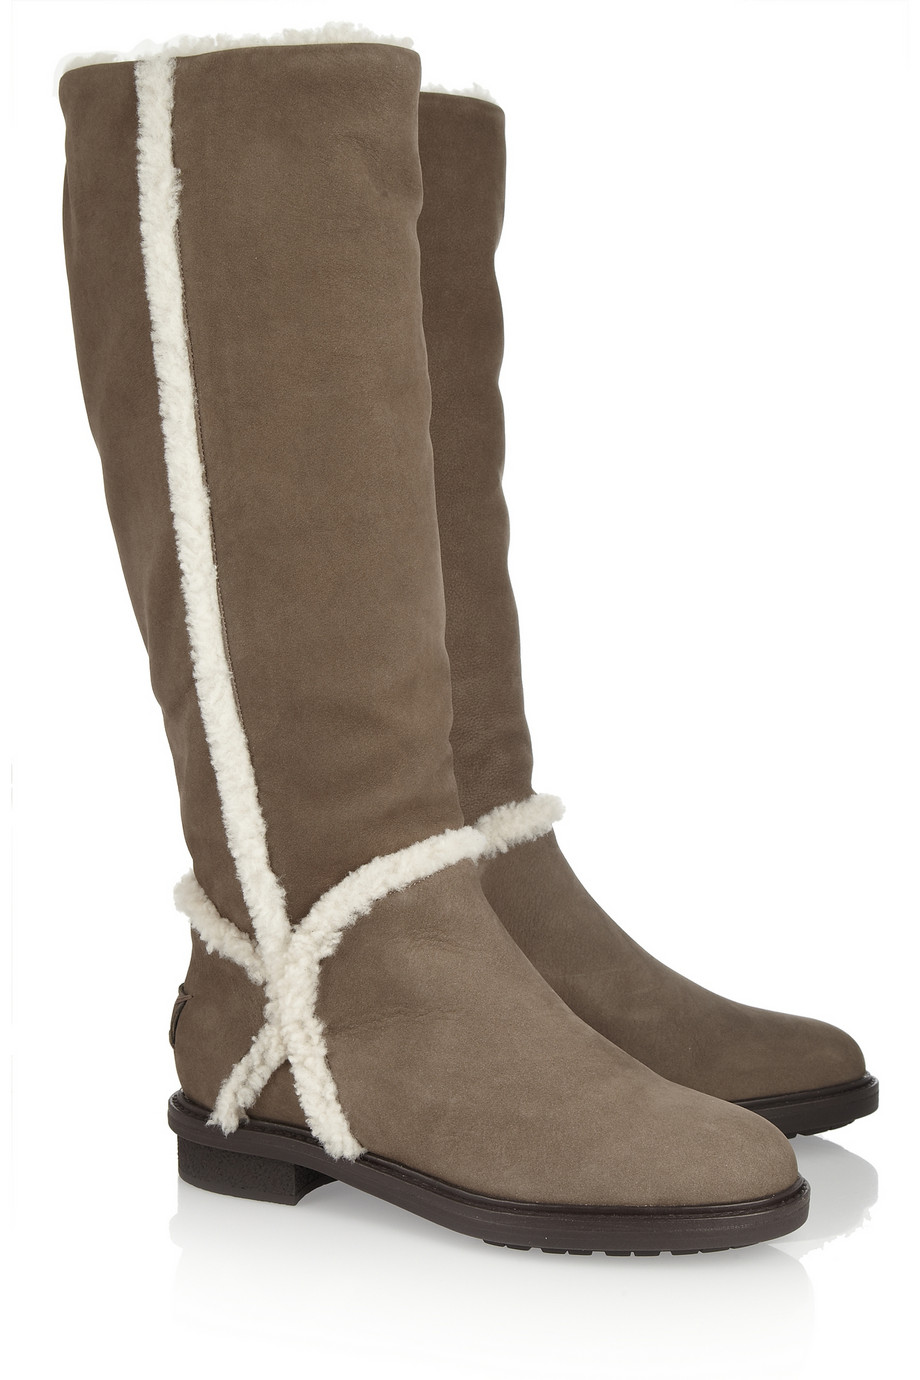 cheap sale perfect cheap price free shipping Fendi Shearling-Trimmed Knee-High Boots I8sz1DZ